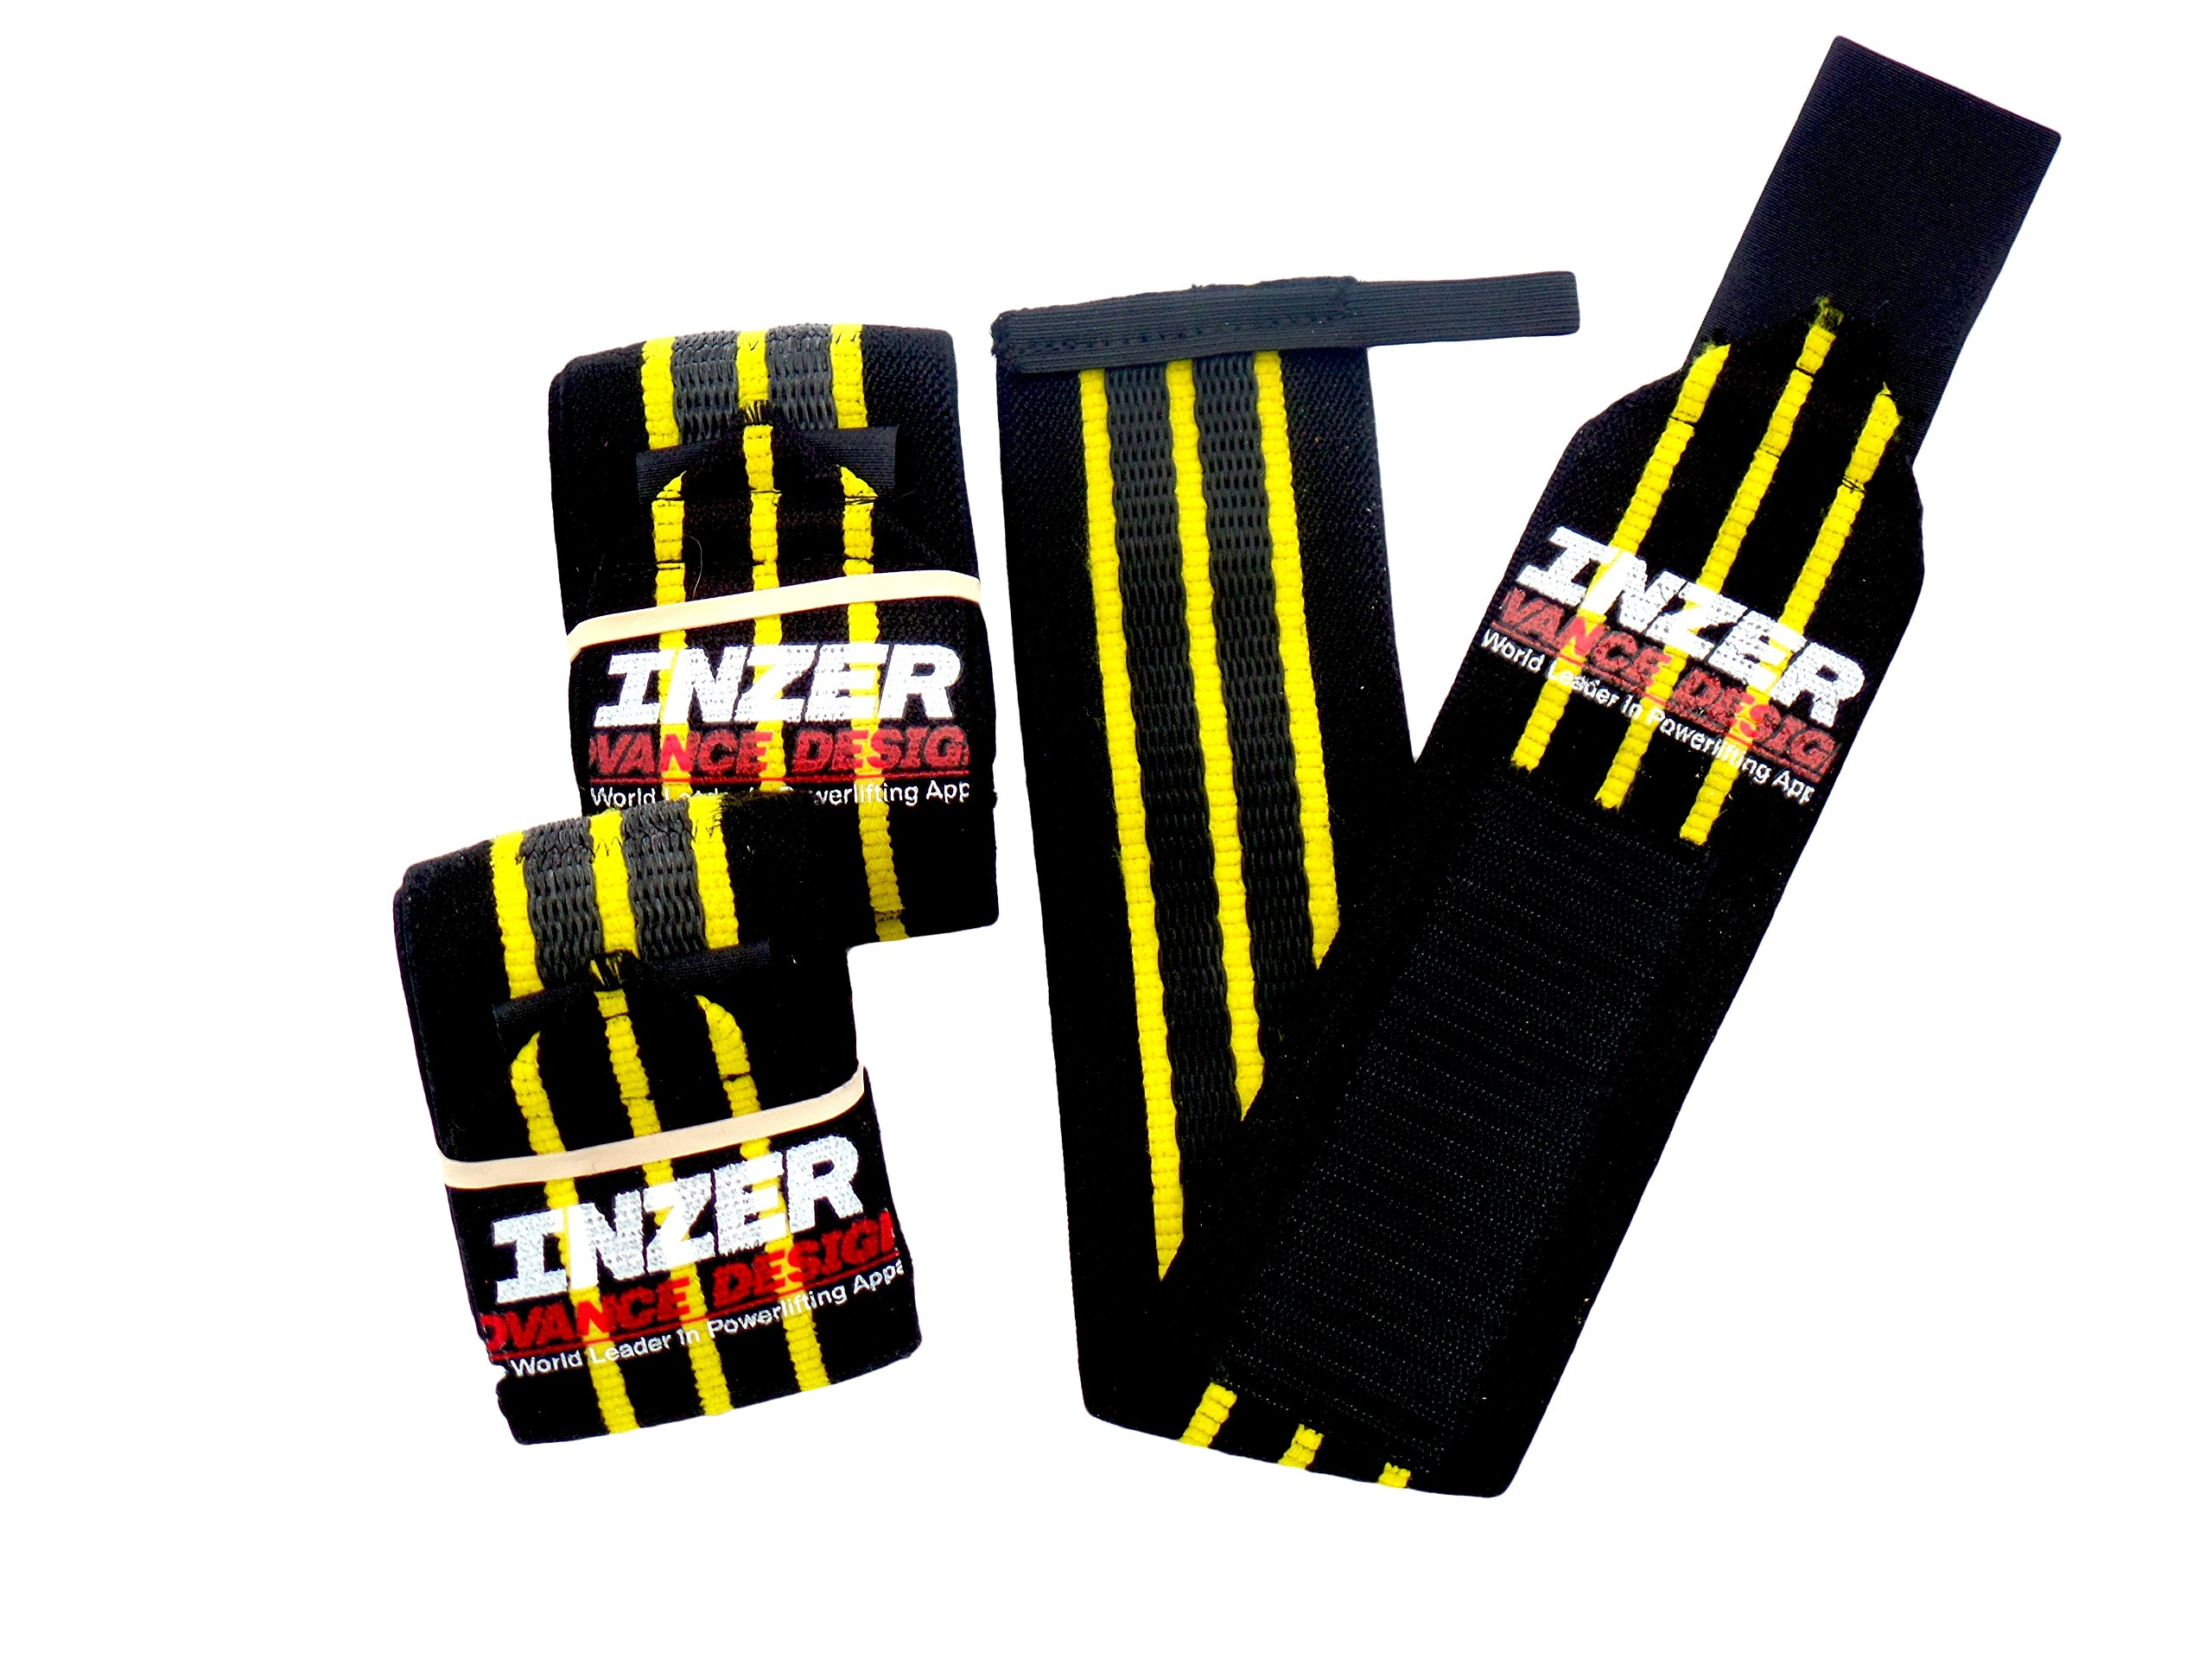 Inzer Advance Designs Gripper Wrist Wrap Large (36'') Yellow